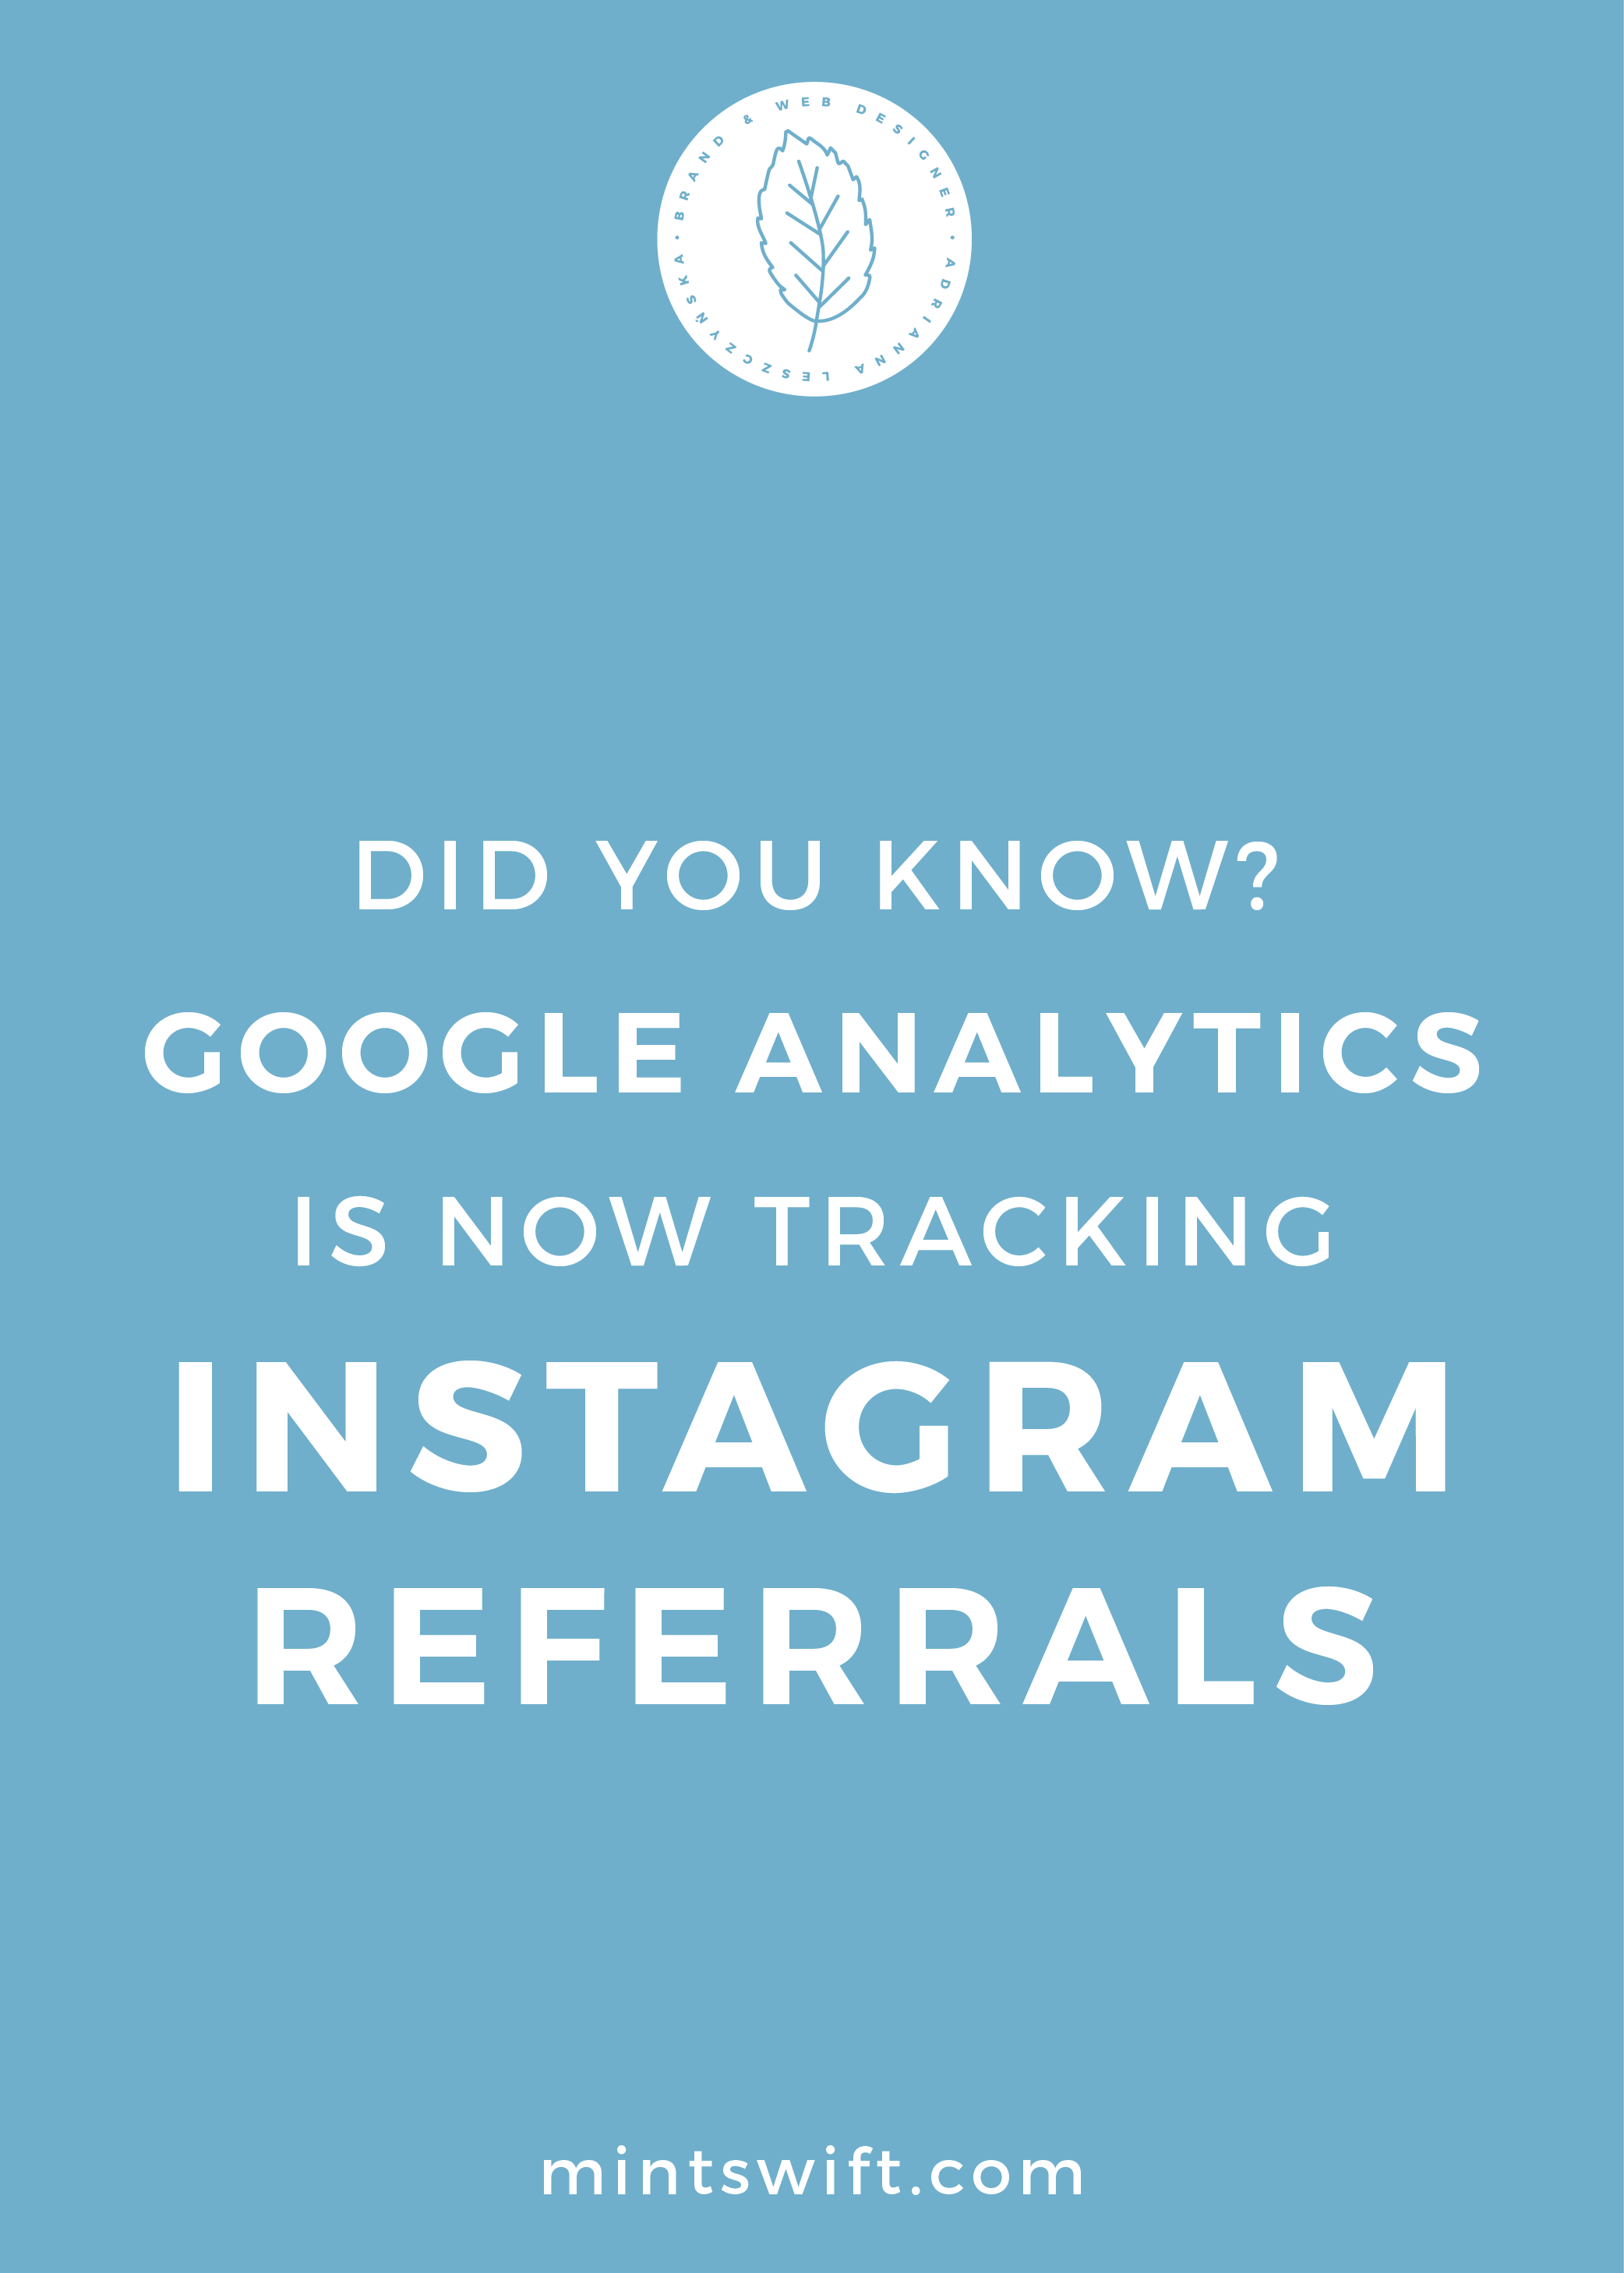 Did You Know Google Analytics is Now Tracking Instagram Referrals - MintSwift